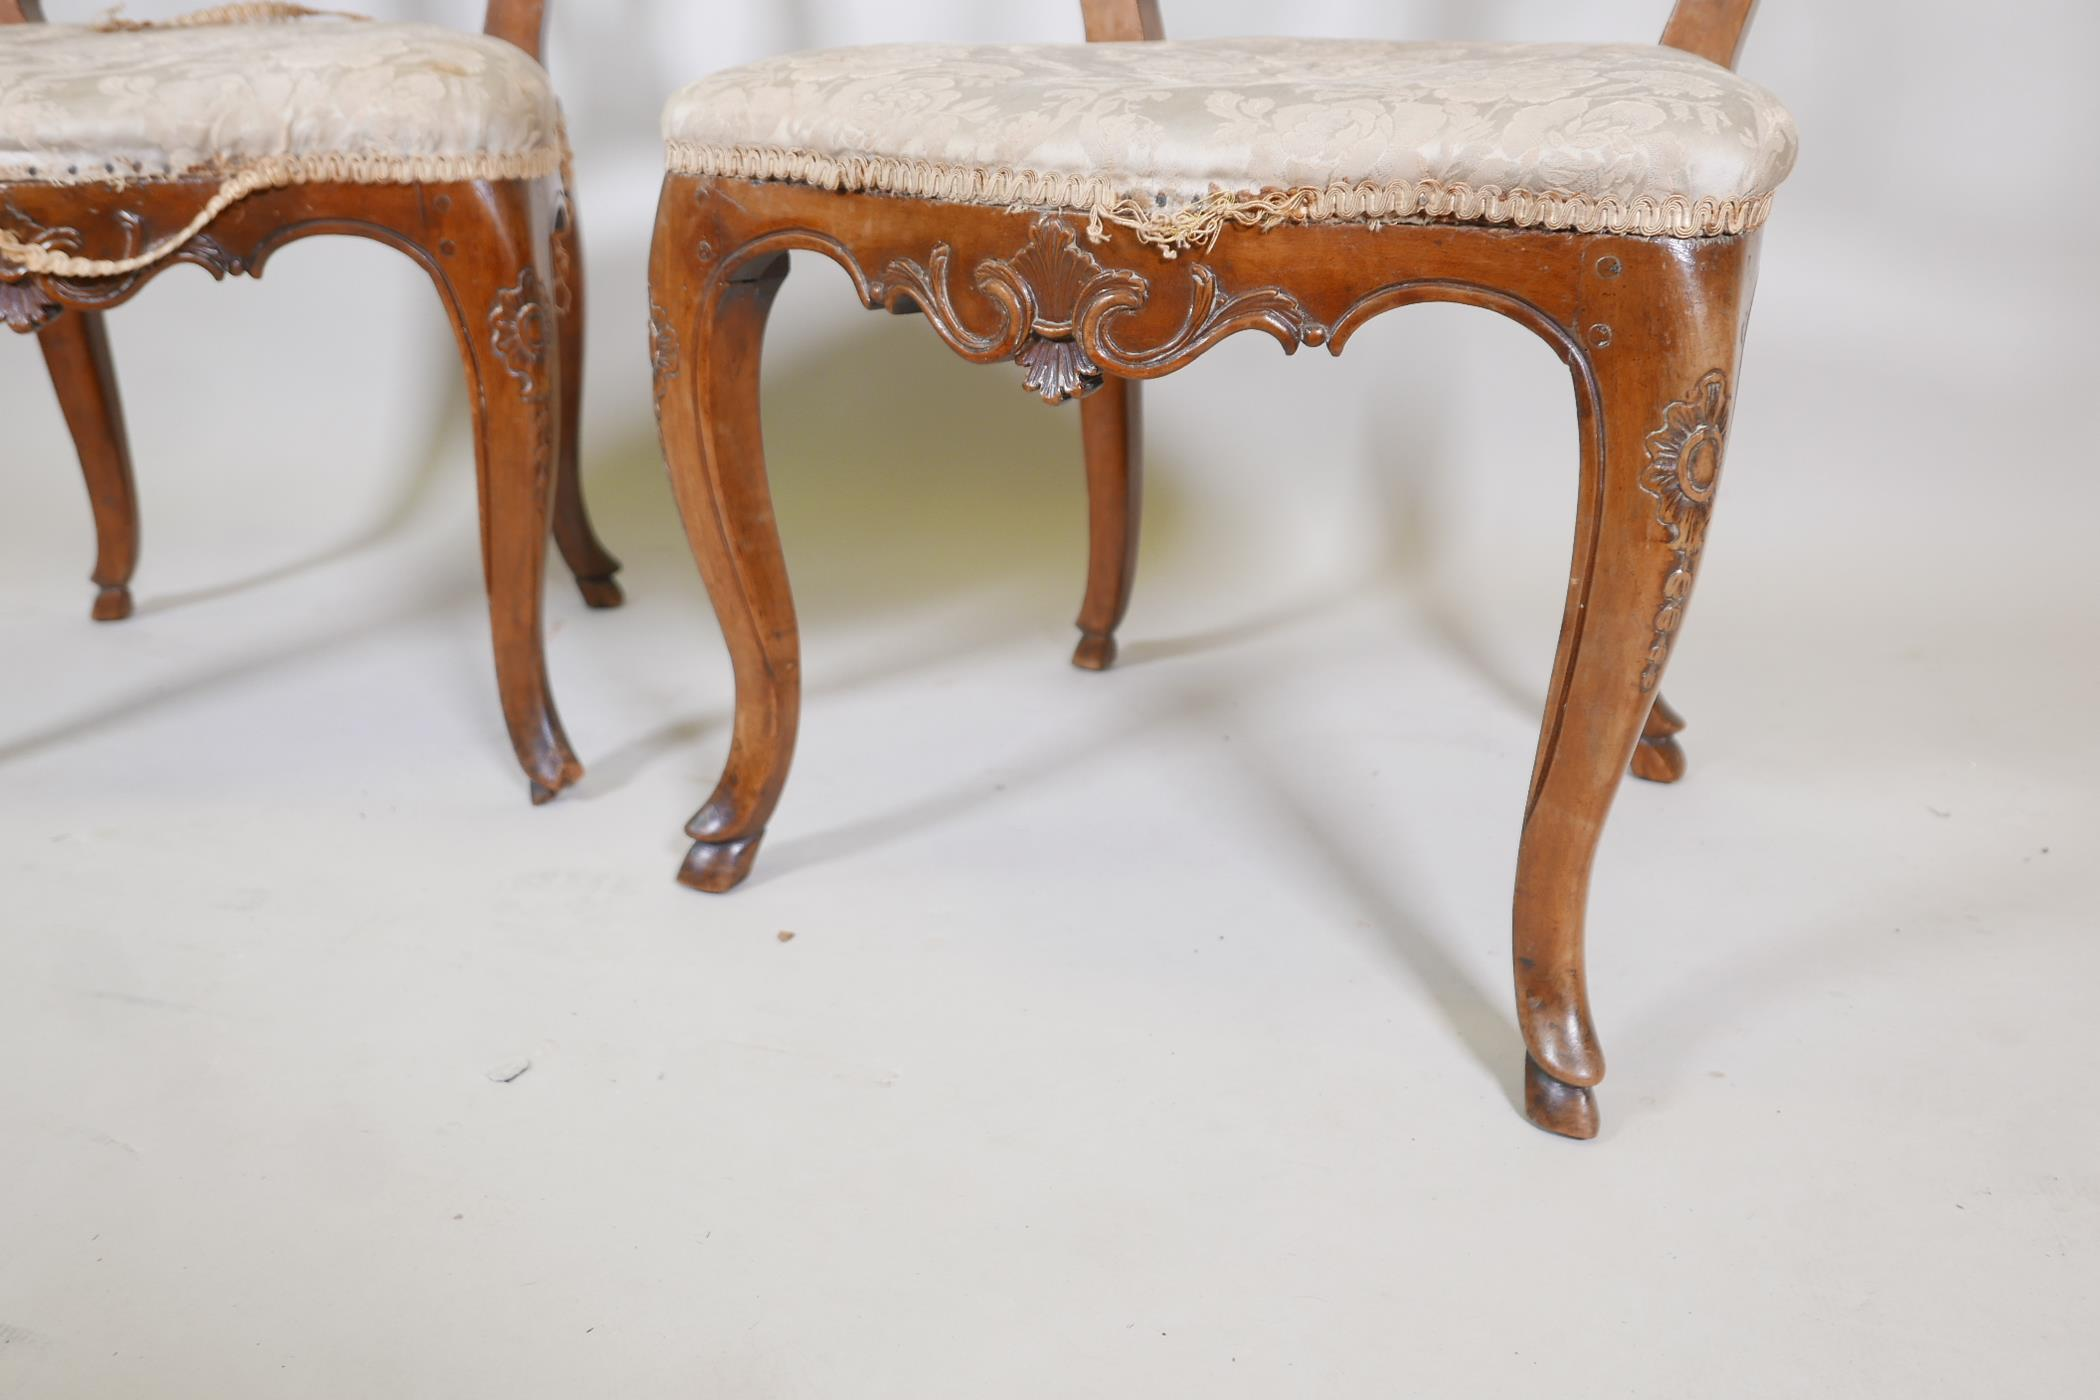 A pair of C18th French walnut pierced splat back side chairs with finely carved decoration, raised - Image 3 of 7